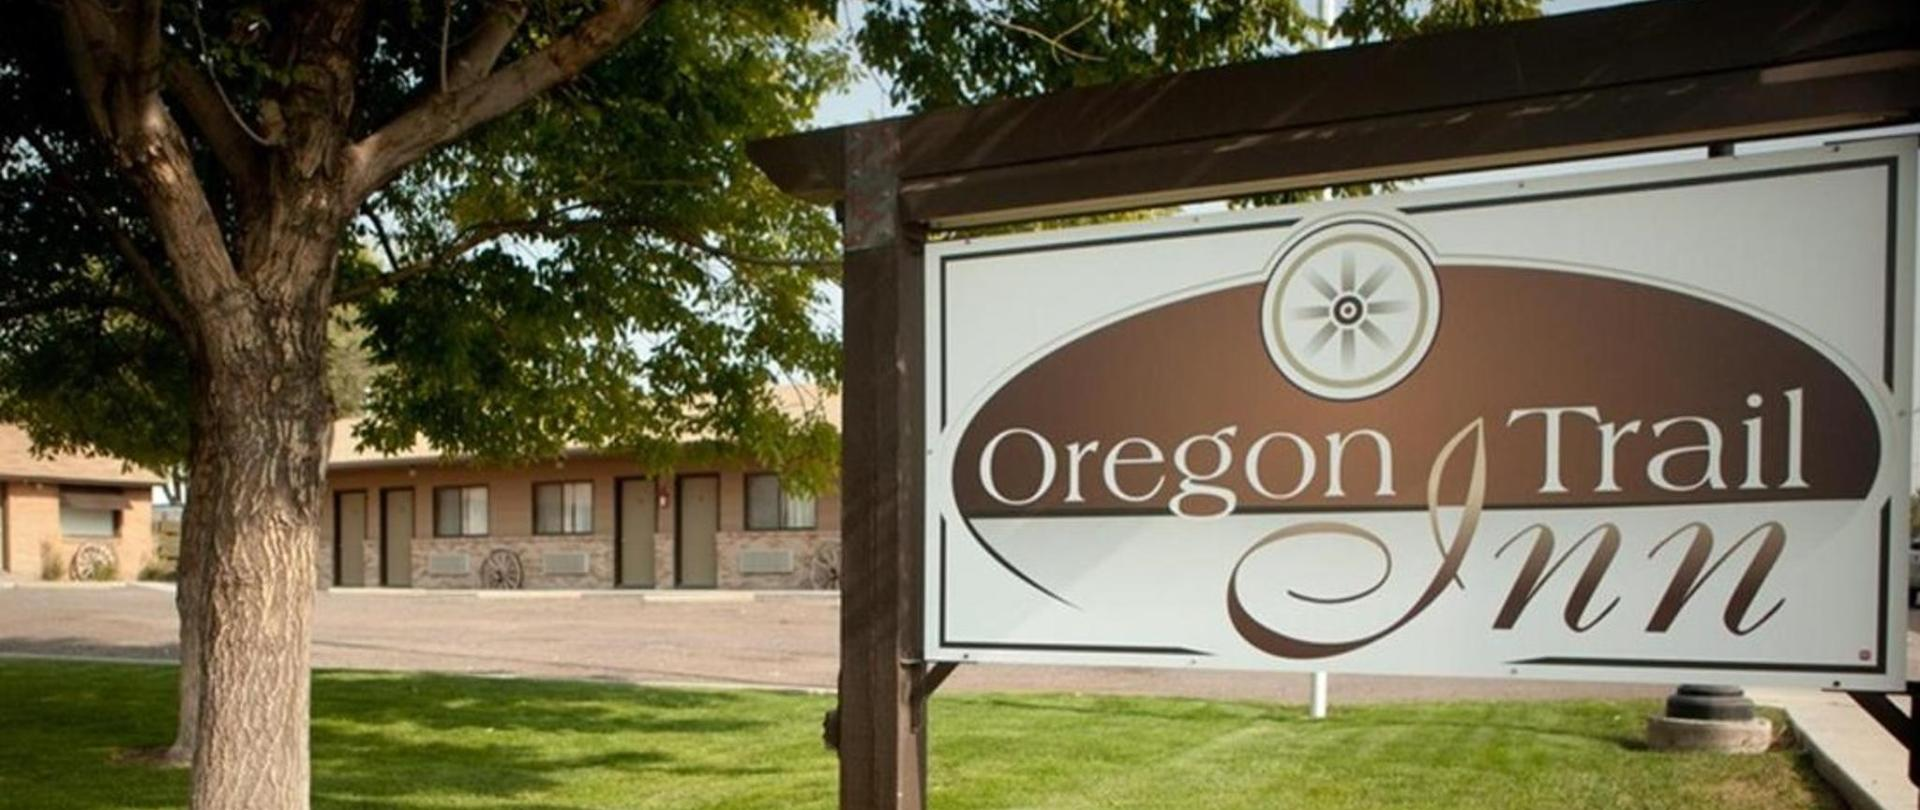 oregon trail inn logo.jpg